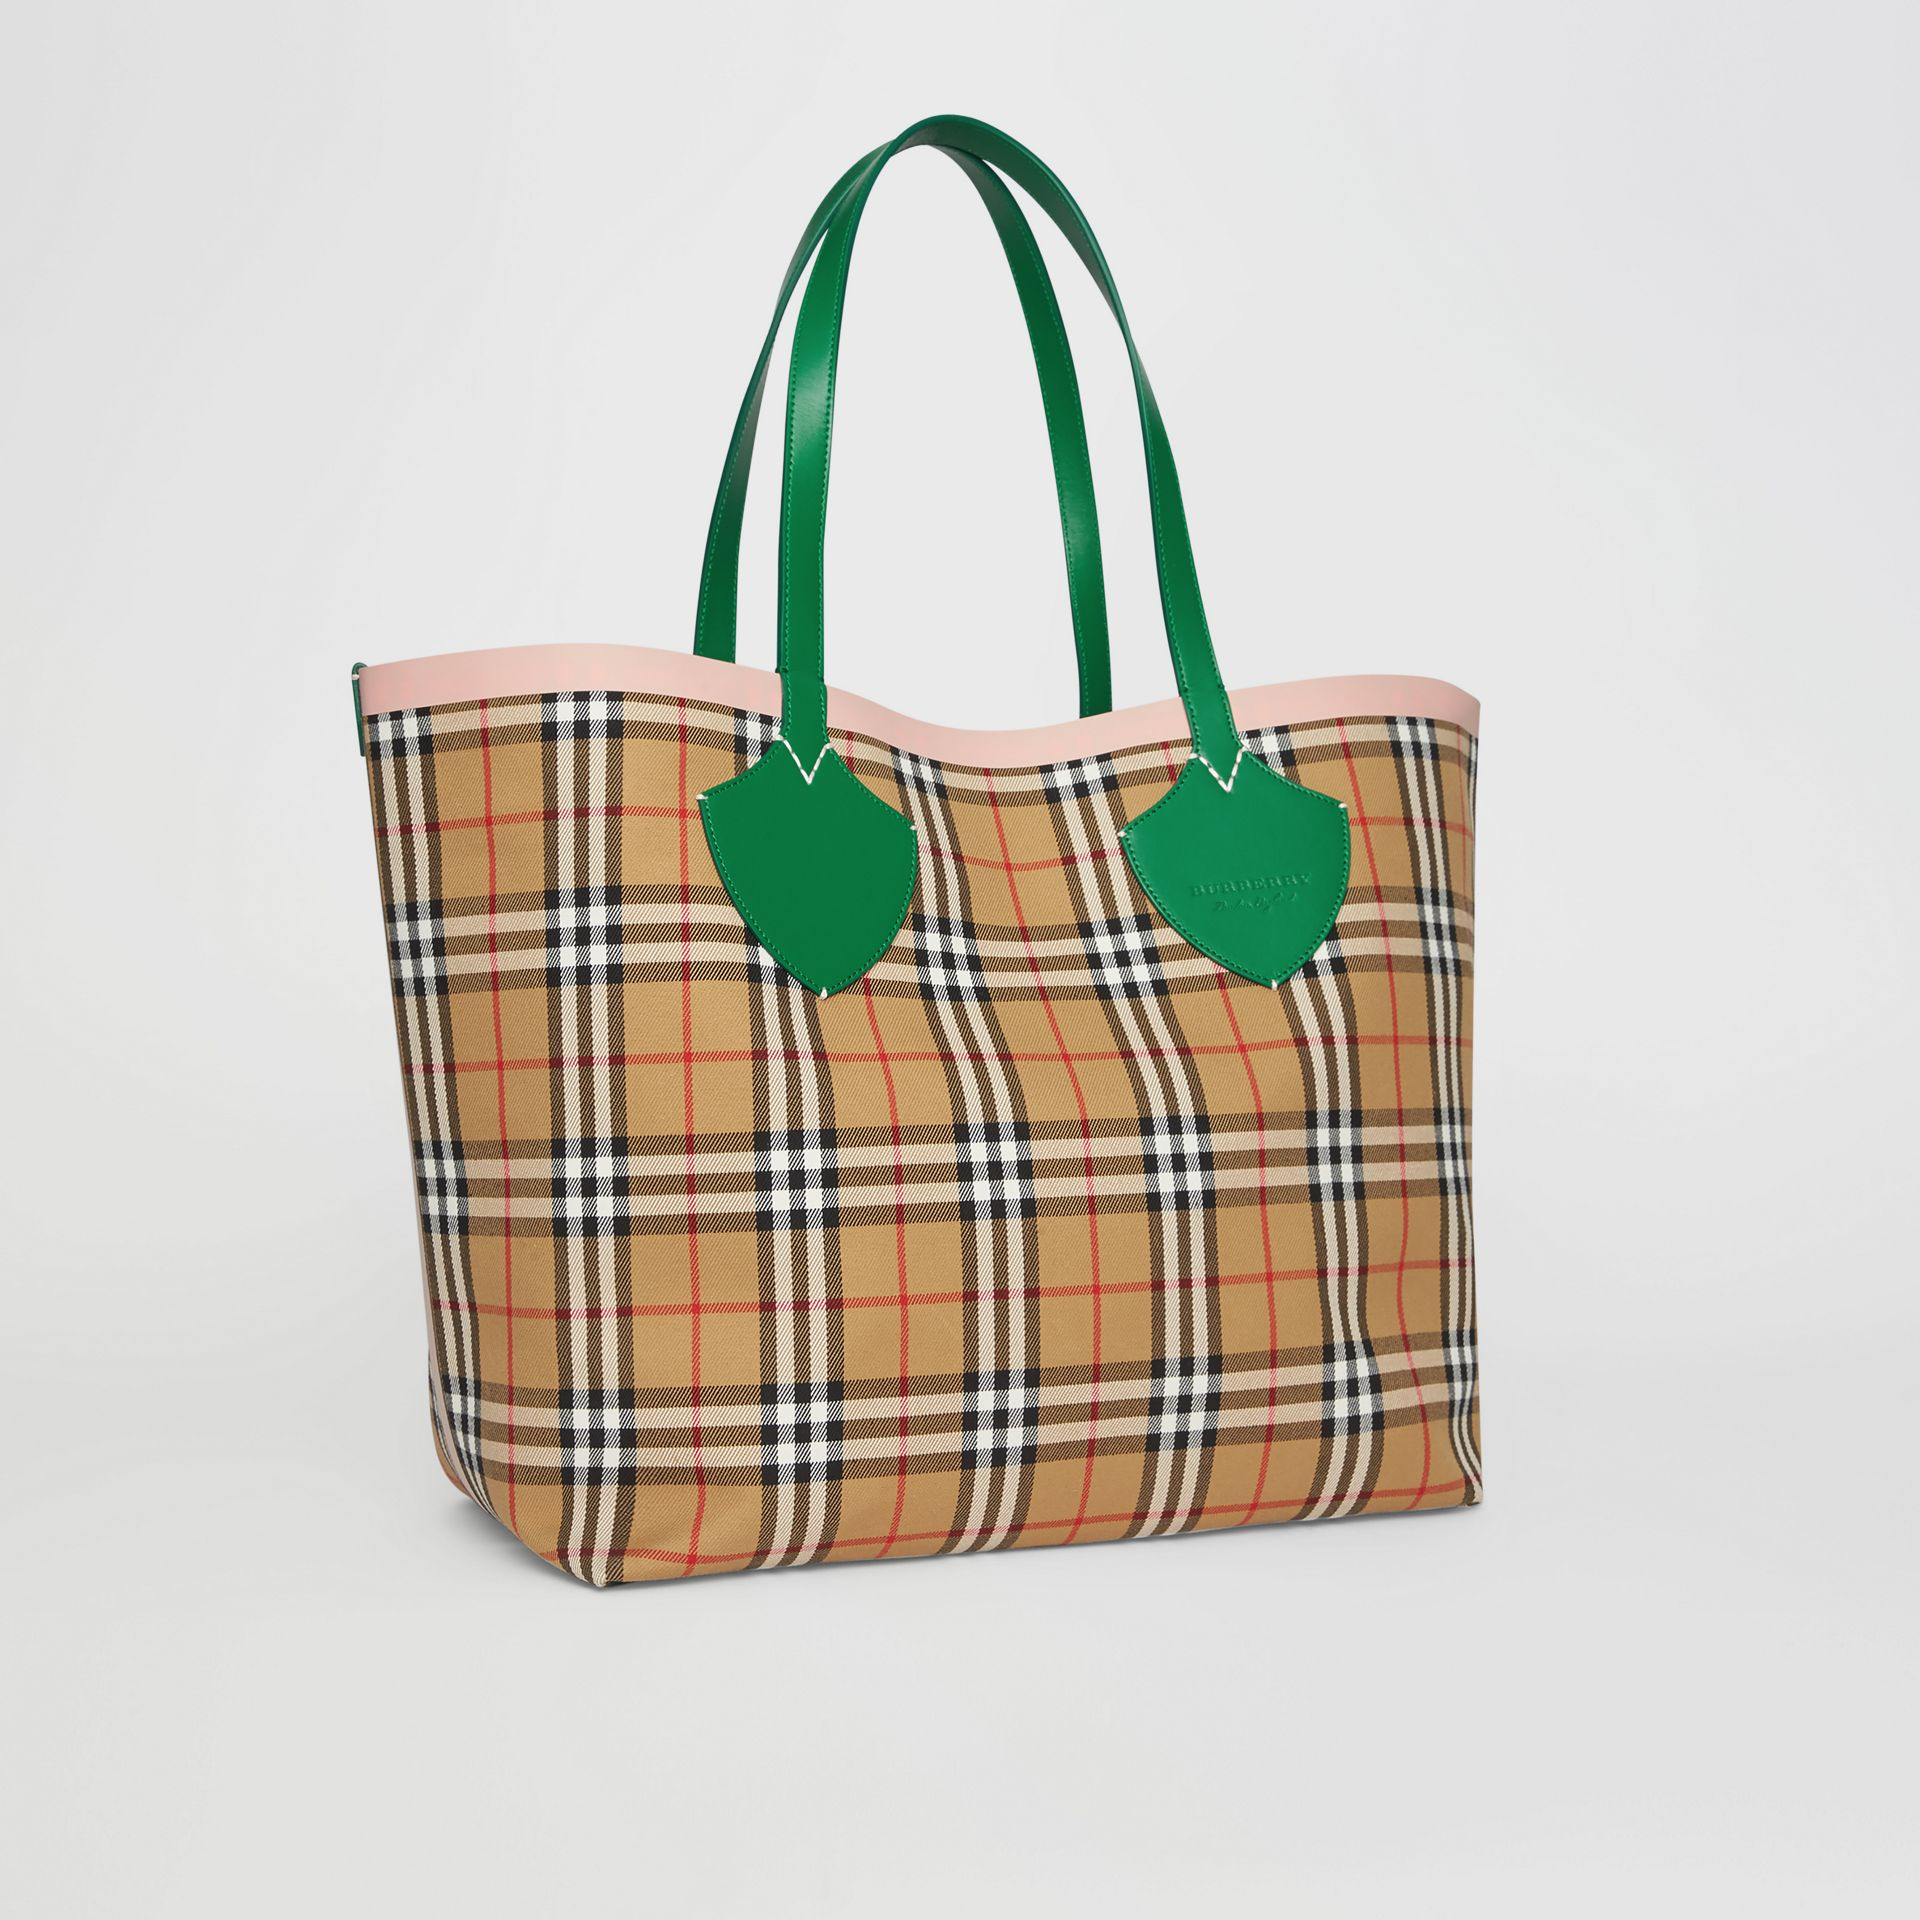 The Giant Reversible Tote in Vintage Check in Palm Green/pink Apricot - Women | Burberry Canada - gallery image 8